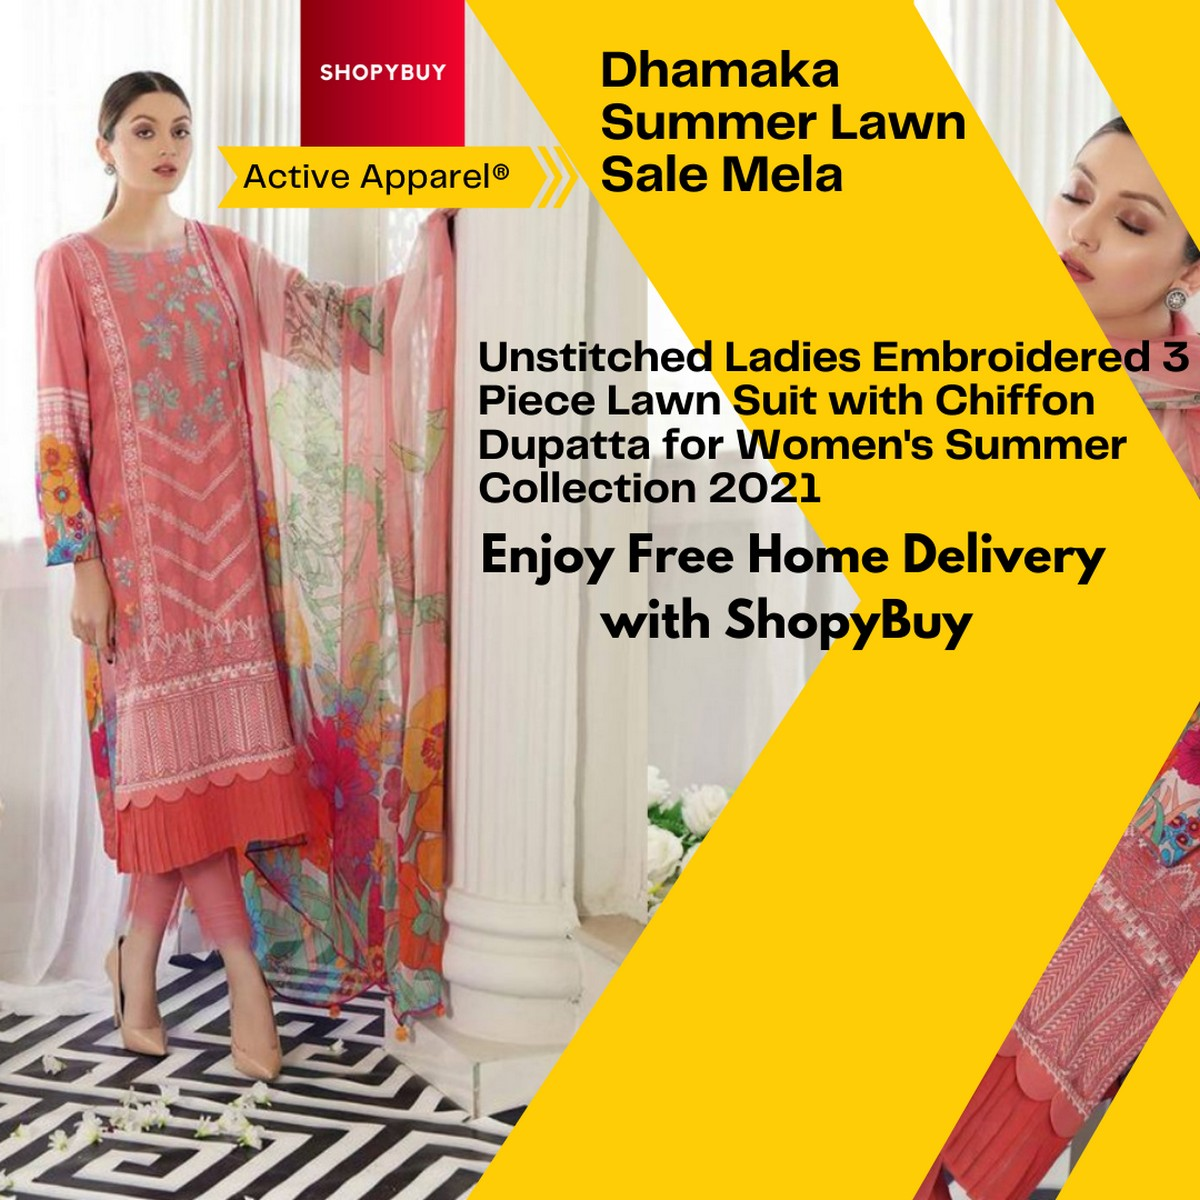 Unstitched Ladies Embroidered 3 Piece Lawn Suit with Chiffon Dupatta for Women's Summer Collection 2021